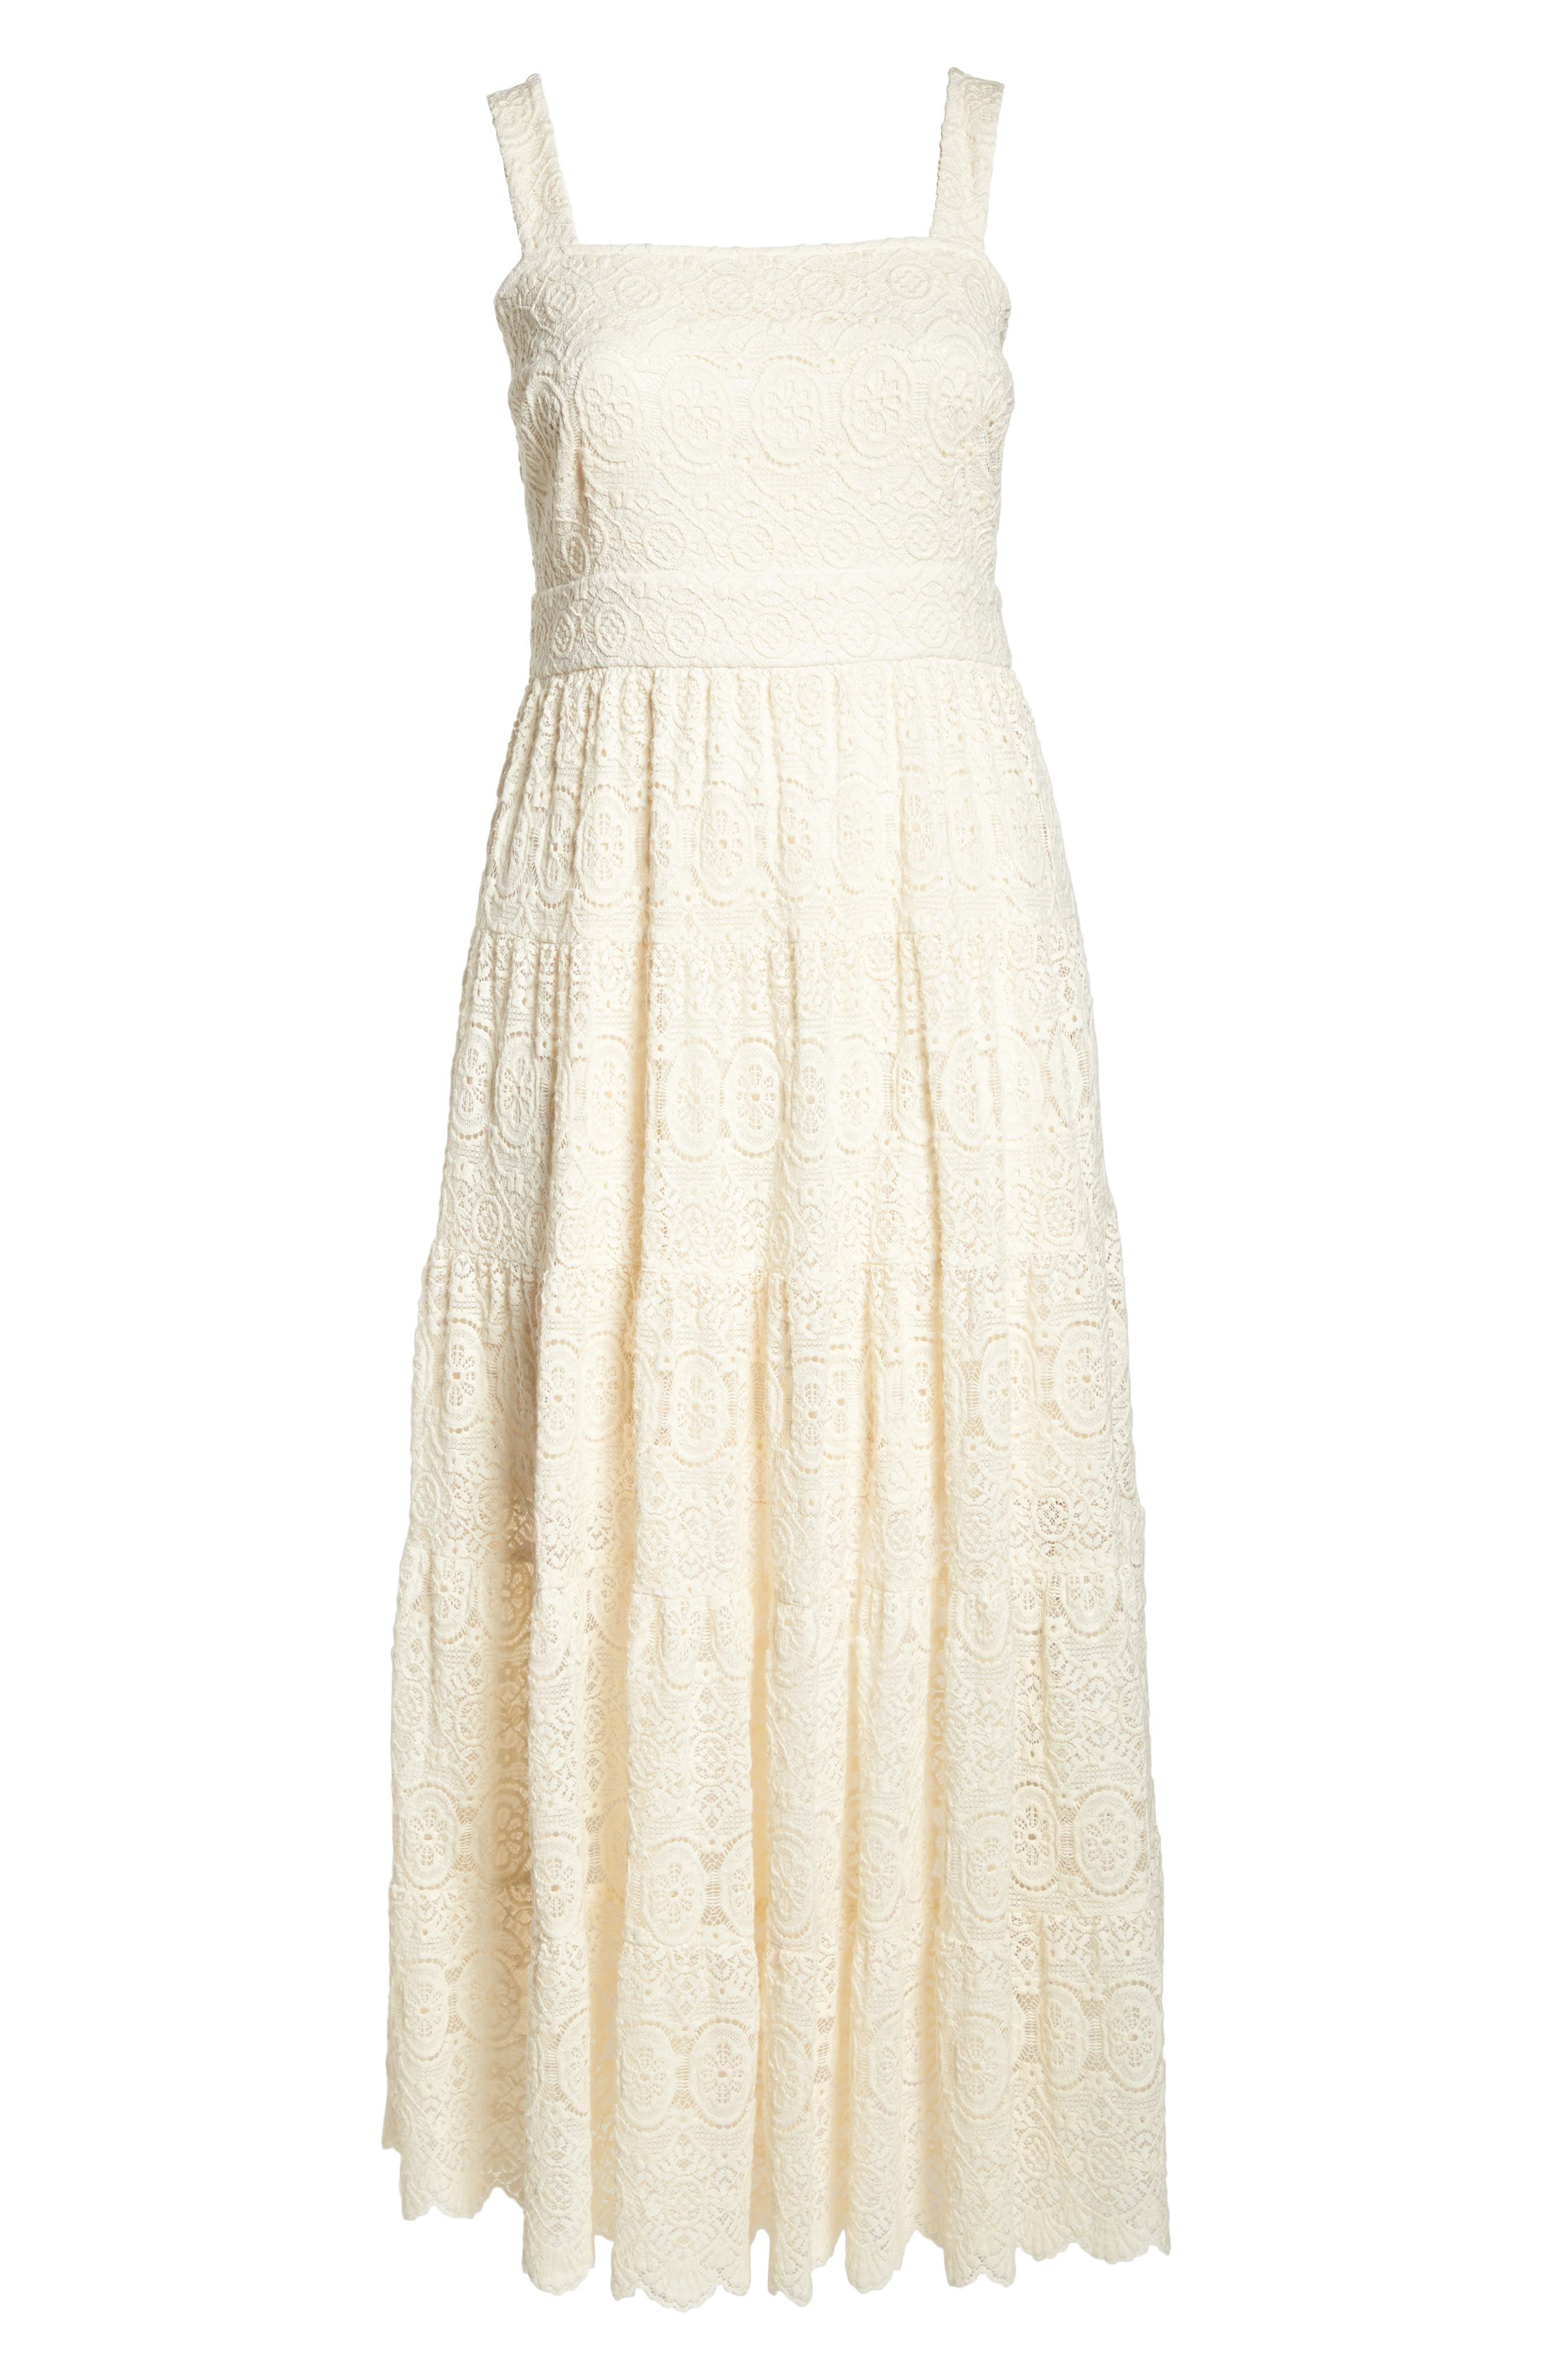 Tiered Lace Maxi Dress,                             Alternate thumbnail 7, color,